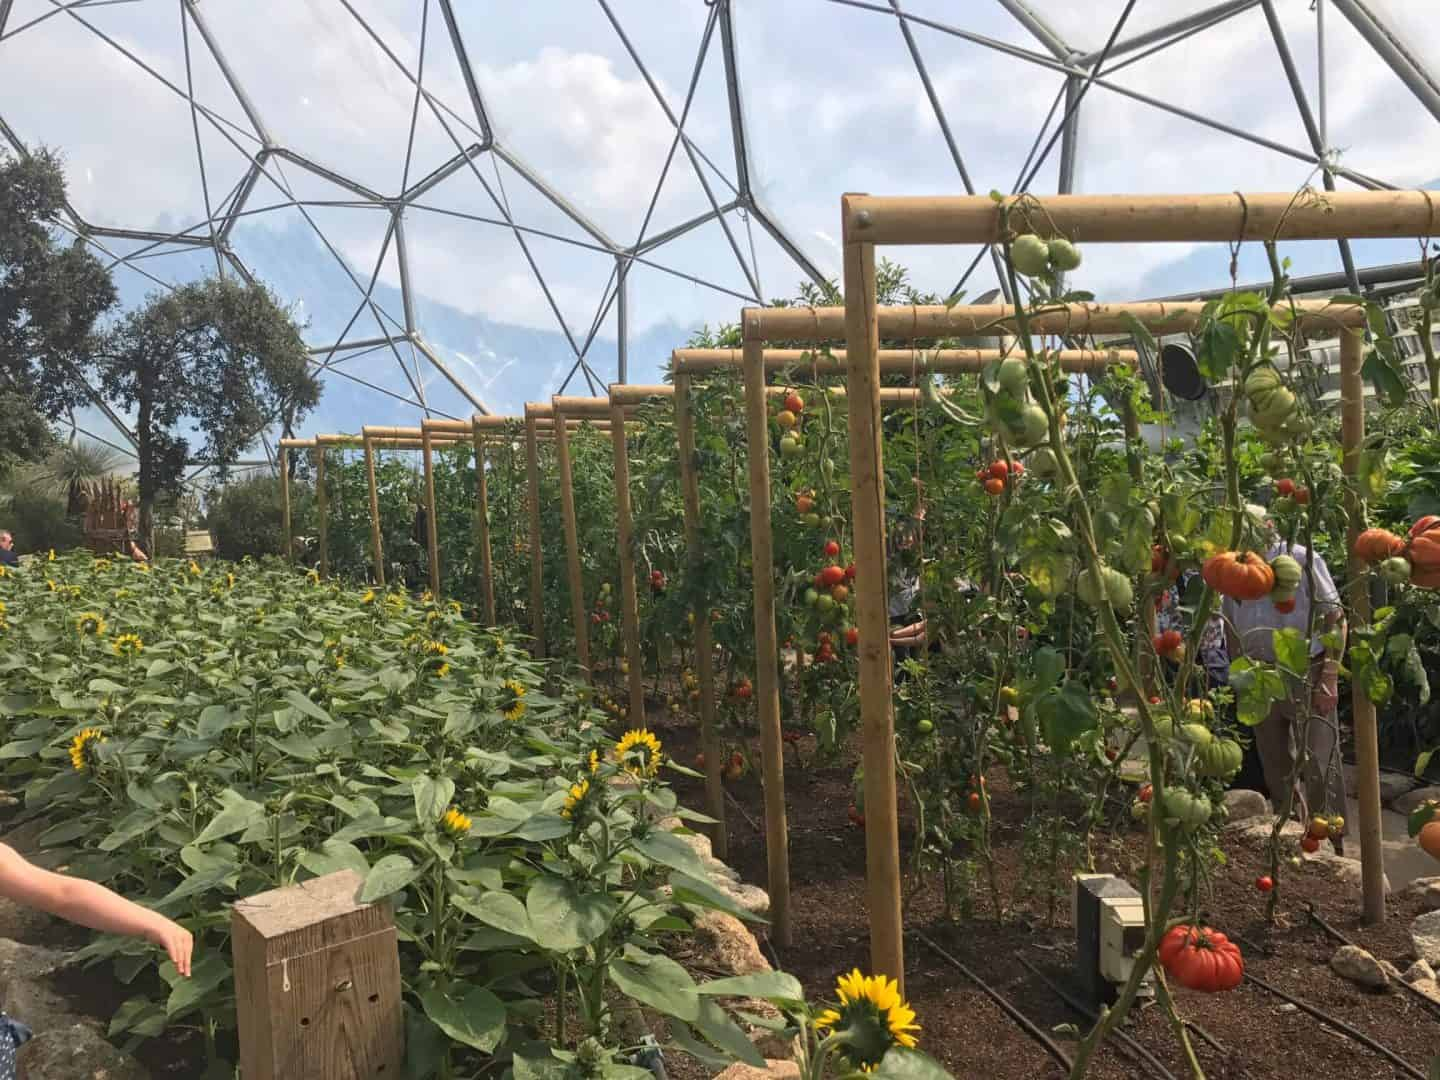 Growing crops at The Eden Project Biome